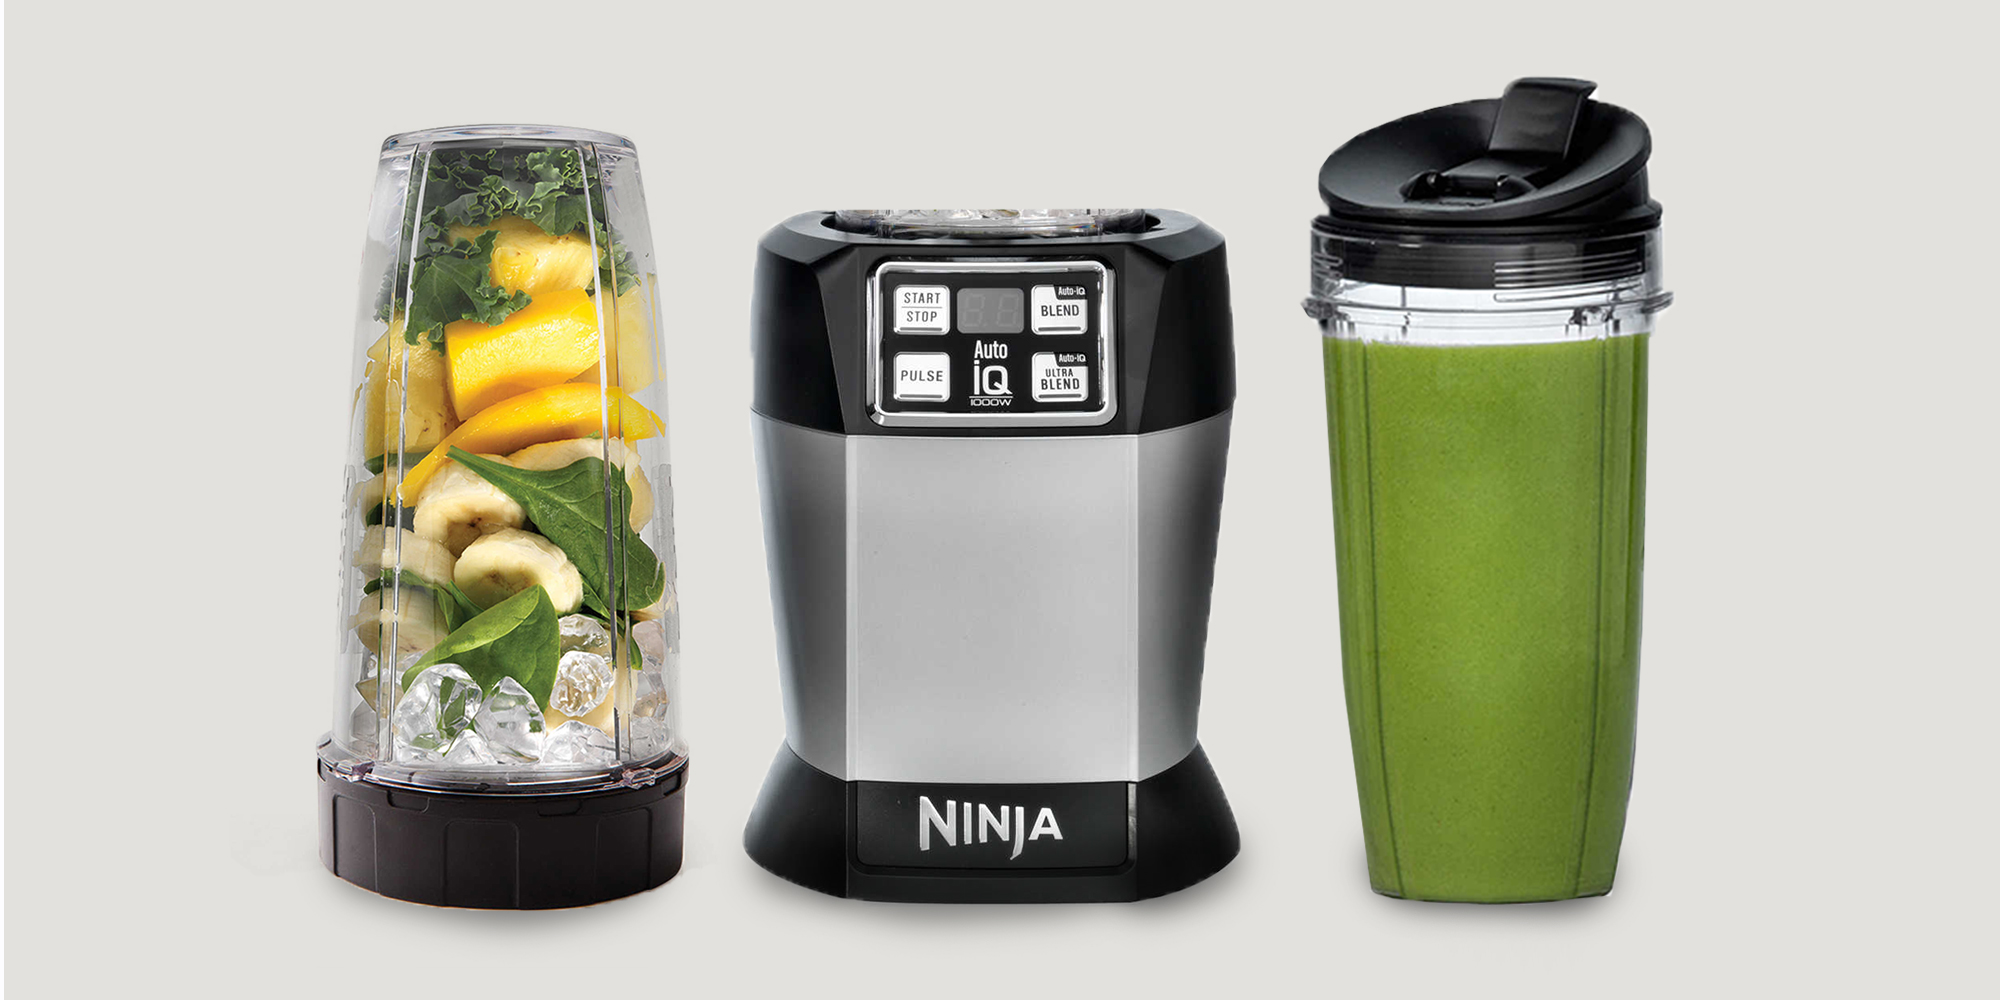 7 best ninja blender reviews in 2017 ninja professional blenders and sets. Black Bedroom Furniture Sets. Home Design Ideas